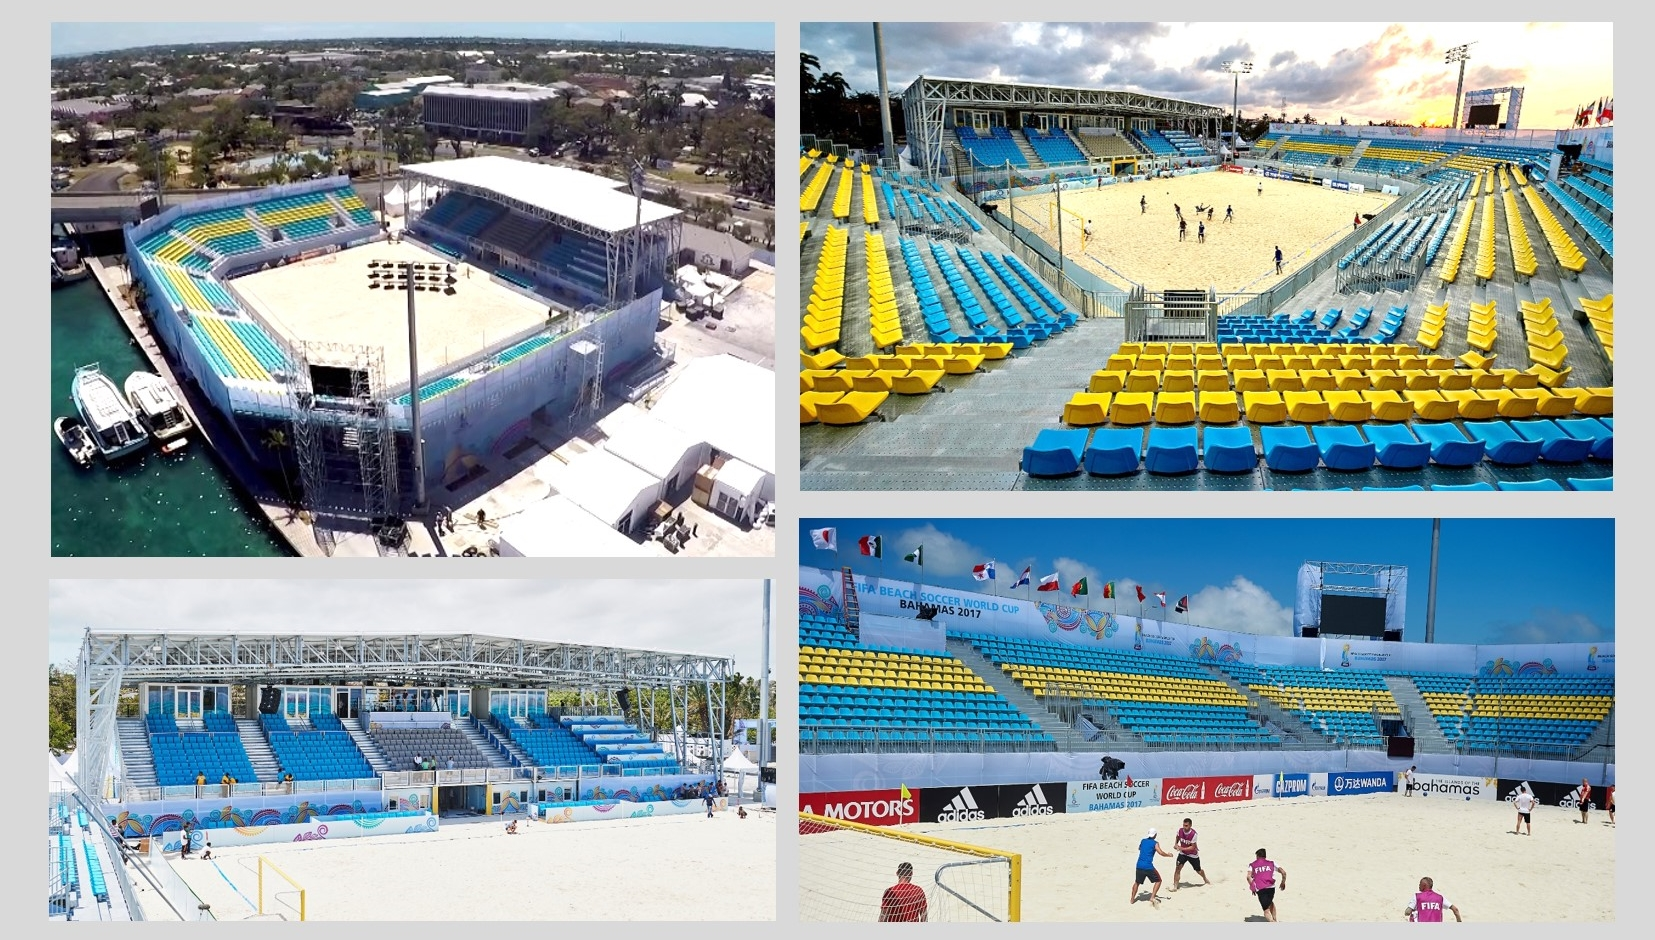 2017_Beach Soccer World Cup v2-modular stadium